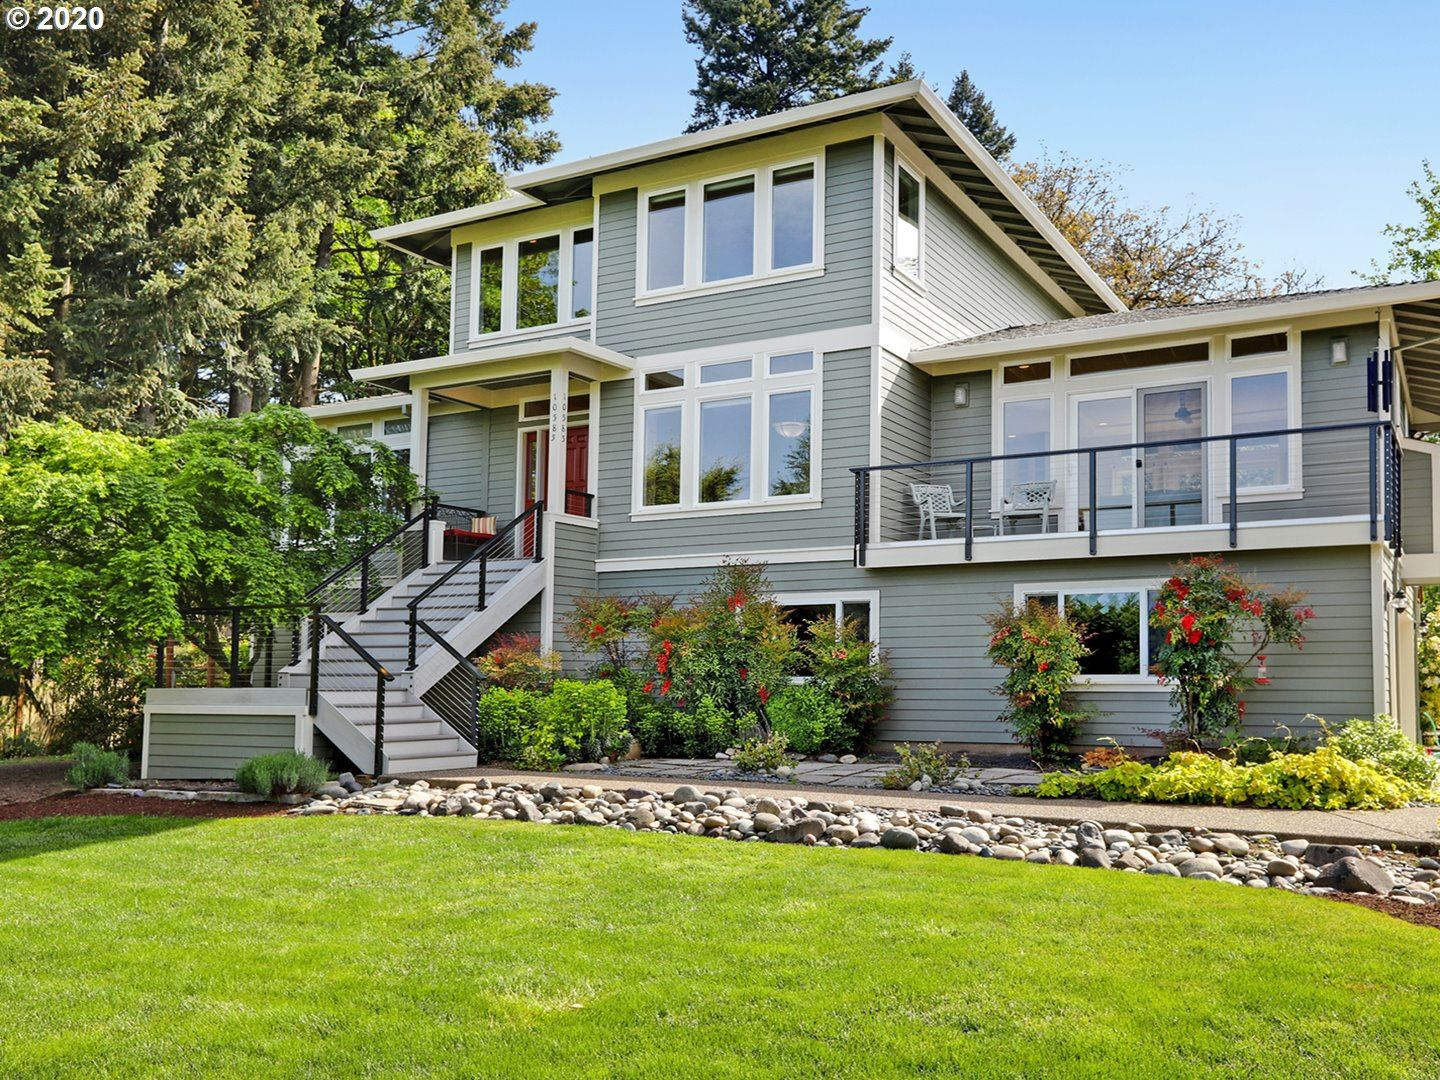 10585 NW CORNELL RD, Portland, OR 97229 - MLS#: 20660734